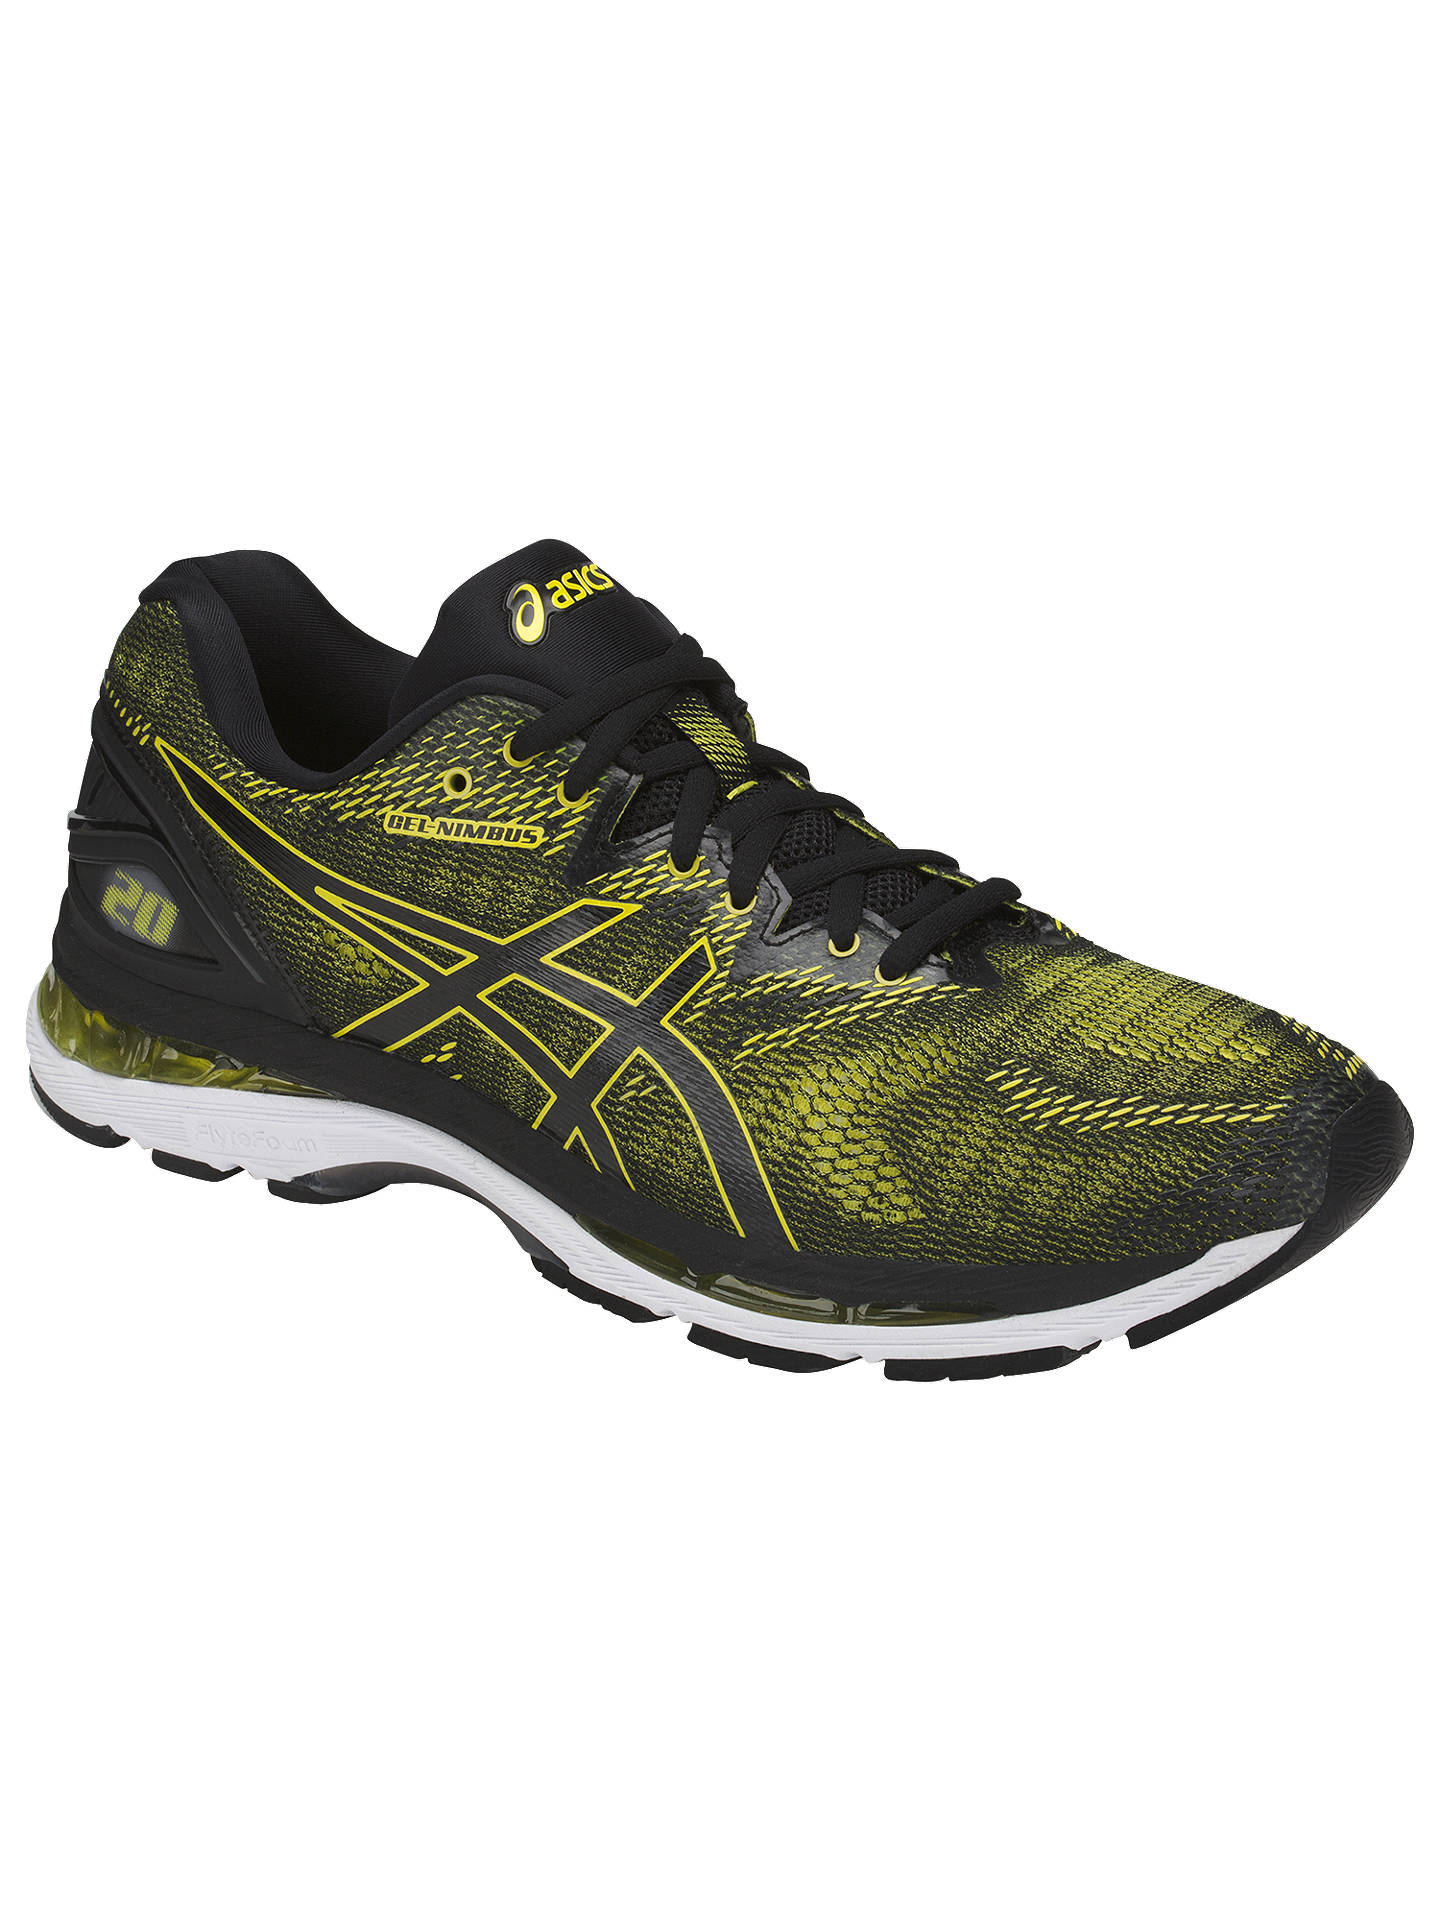 Asics GEL-NIMBUS 20 Men s Running Shoes at John Lewis   Partners ad108a1ab1